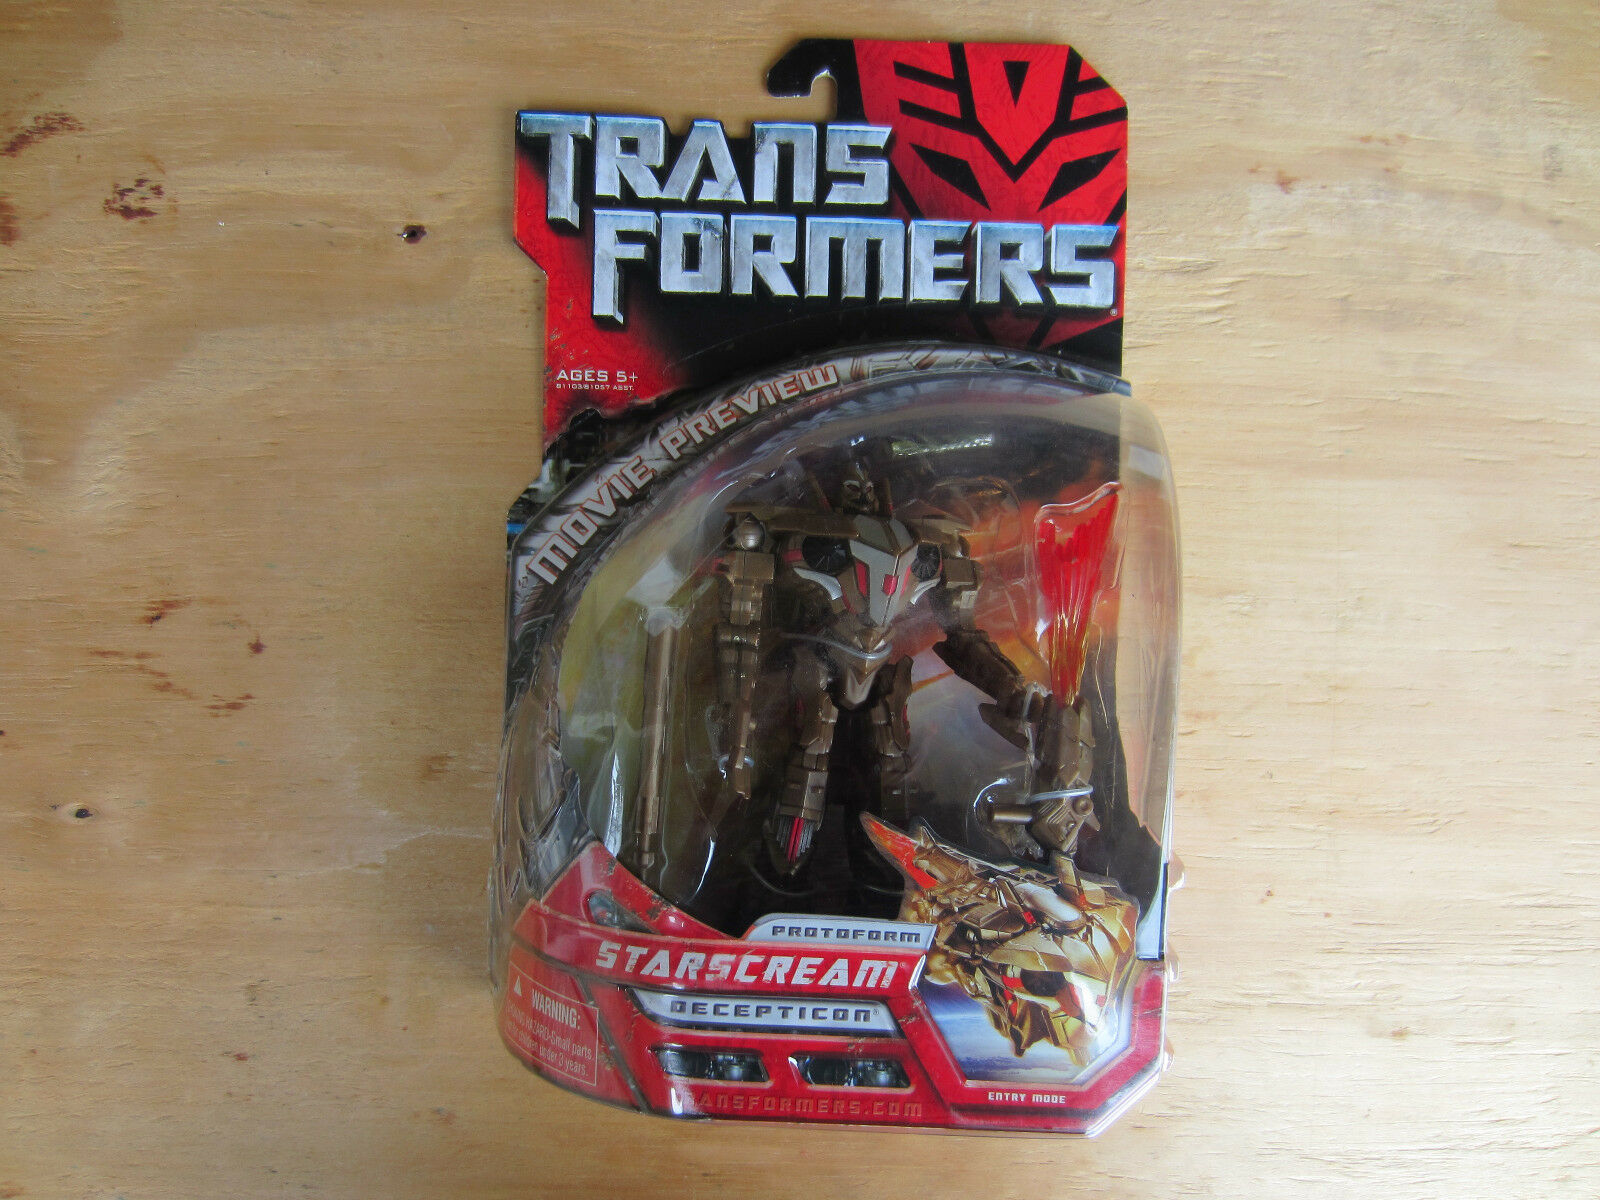 Transformers movie Preview deluxe class Predoform Decepticon Starscream New